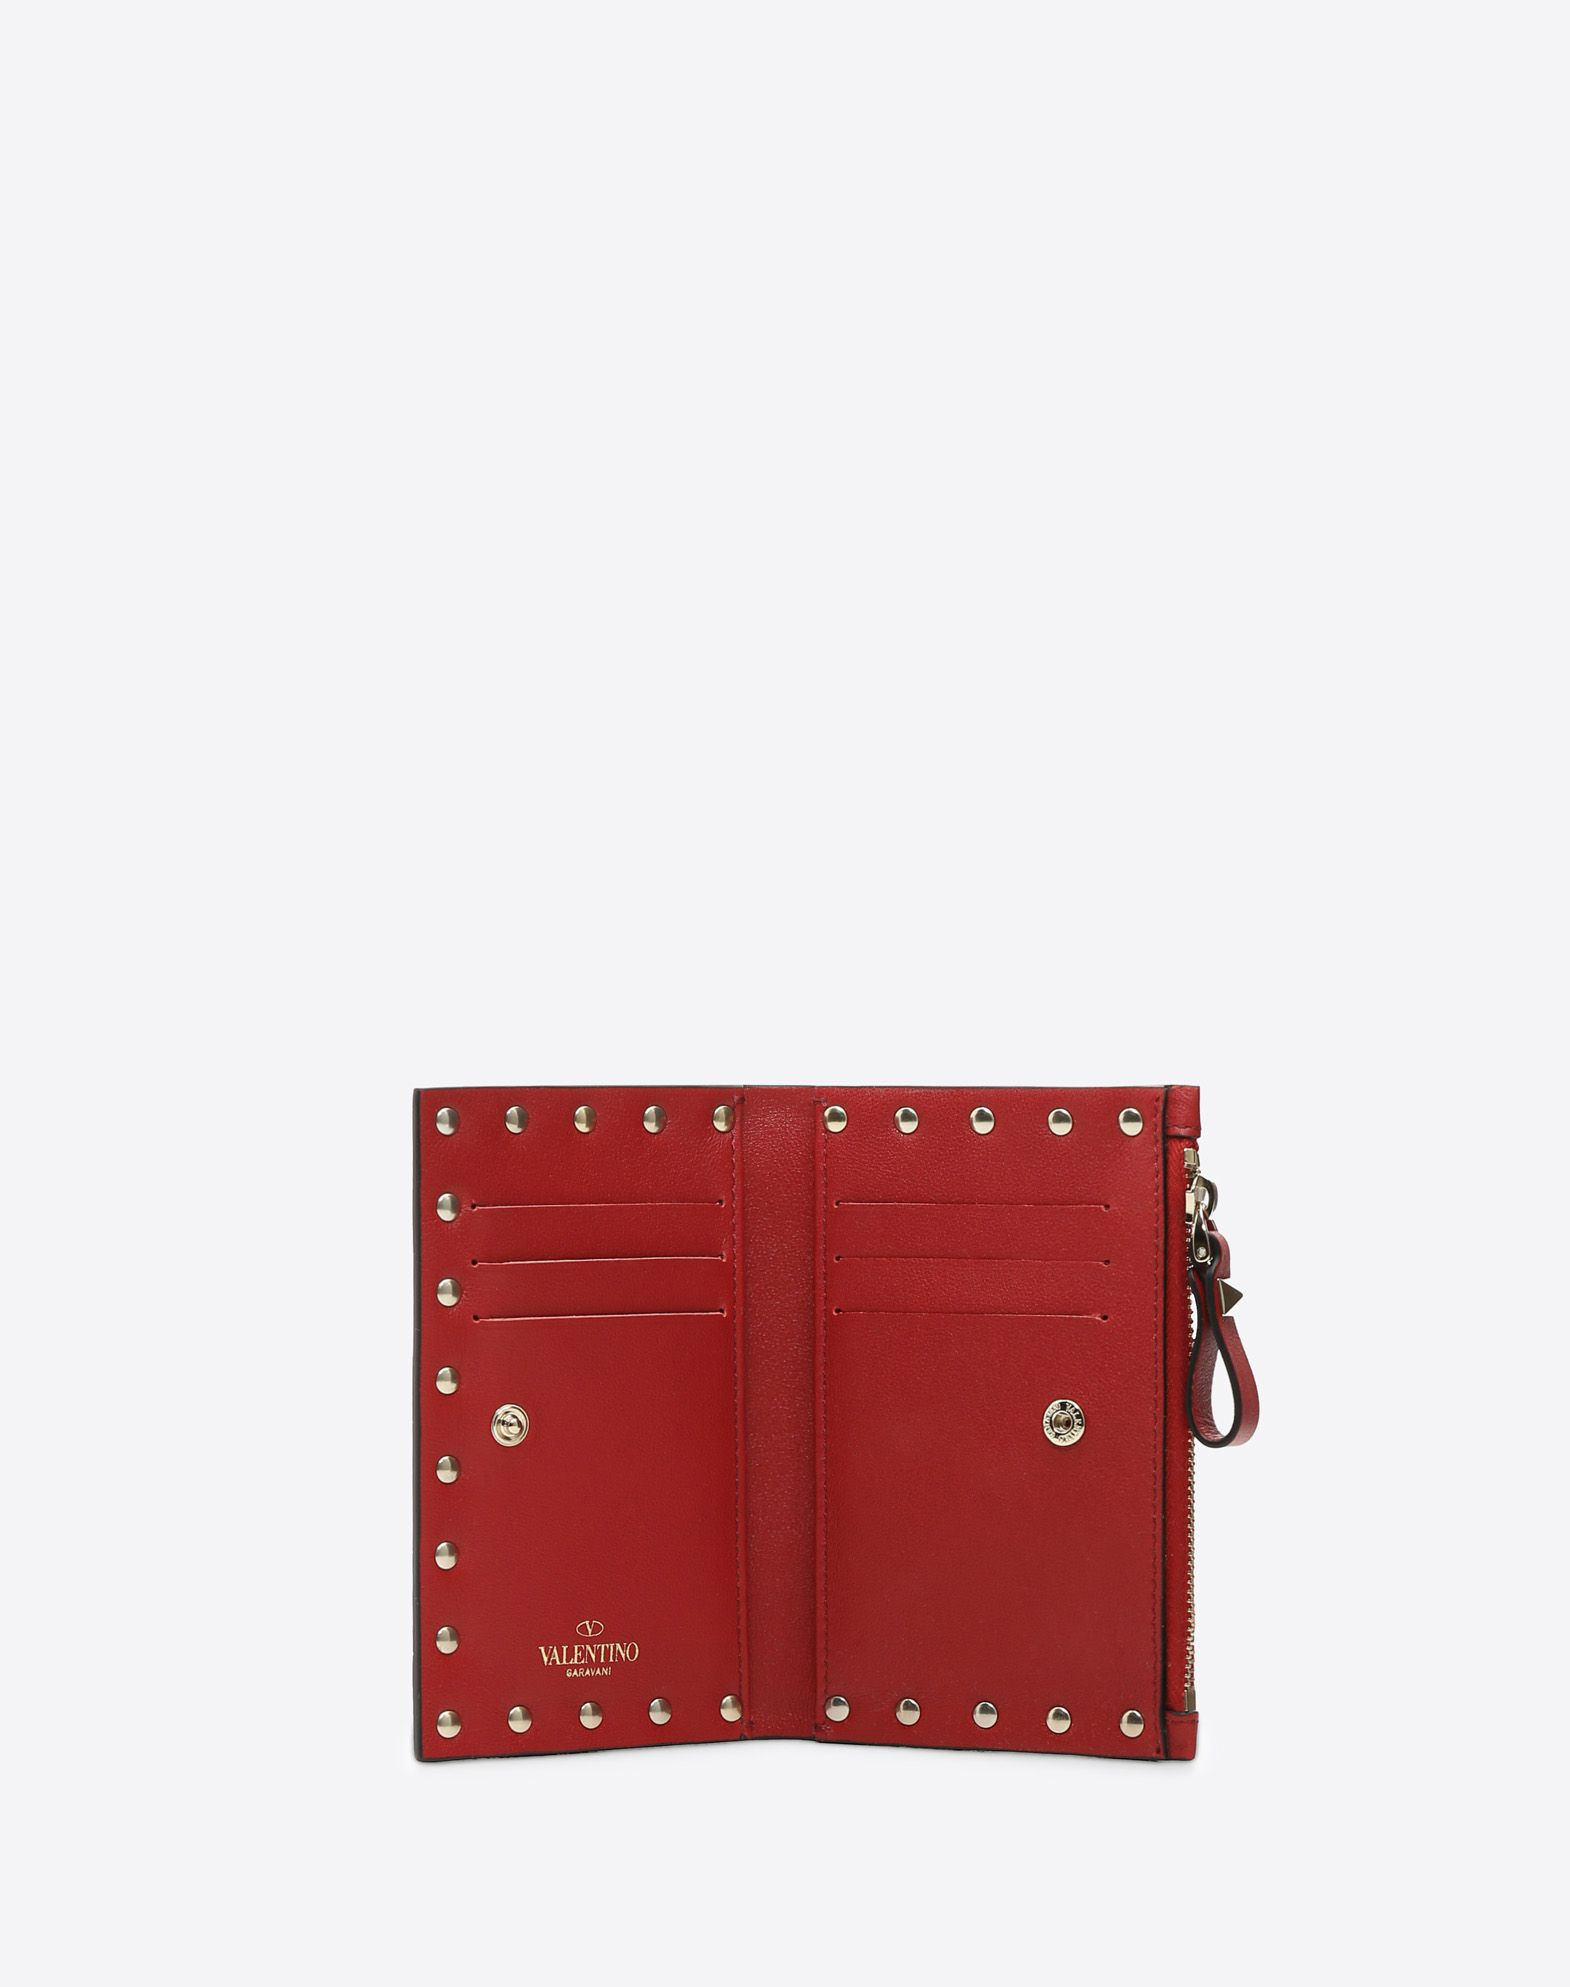 VALENTINO Studs Logo Solid colour Snap button fastening External pocket Internal card slots  46468467re